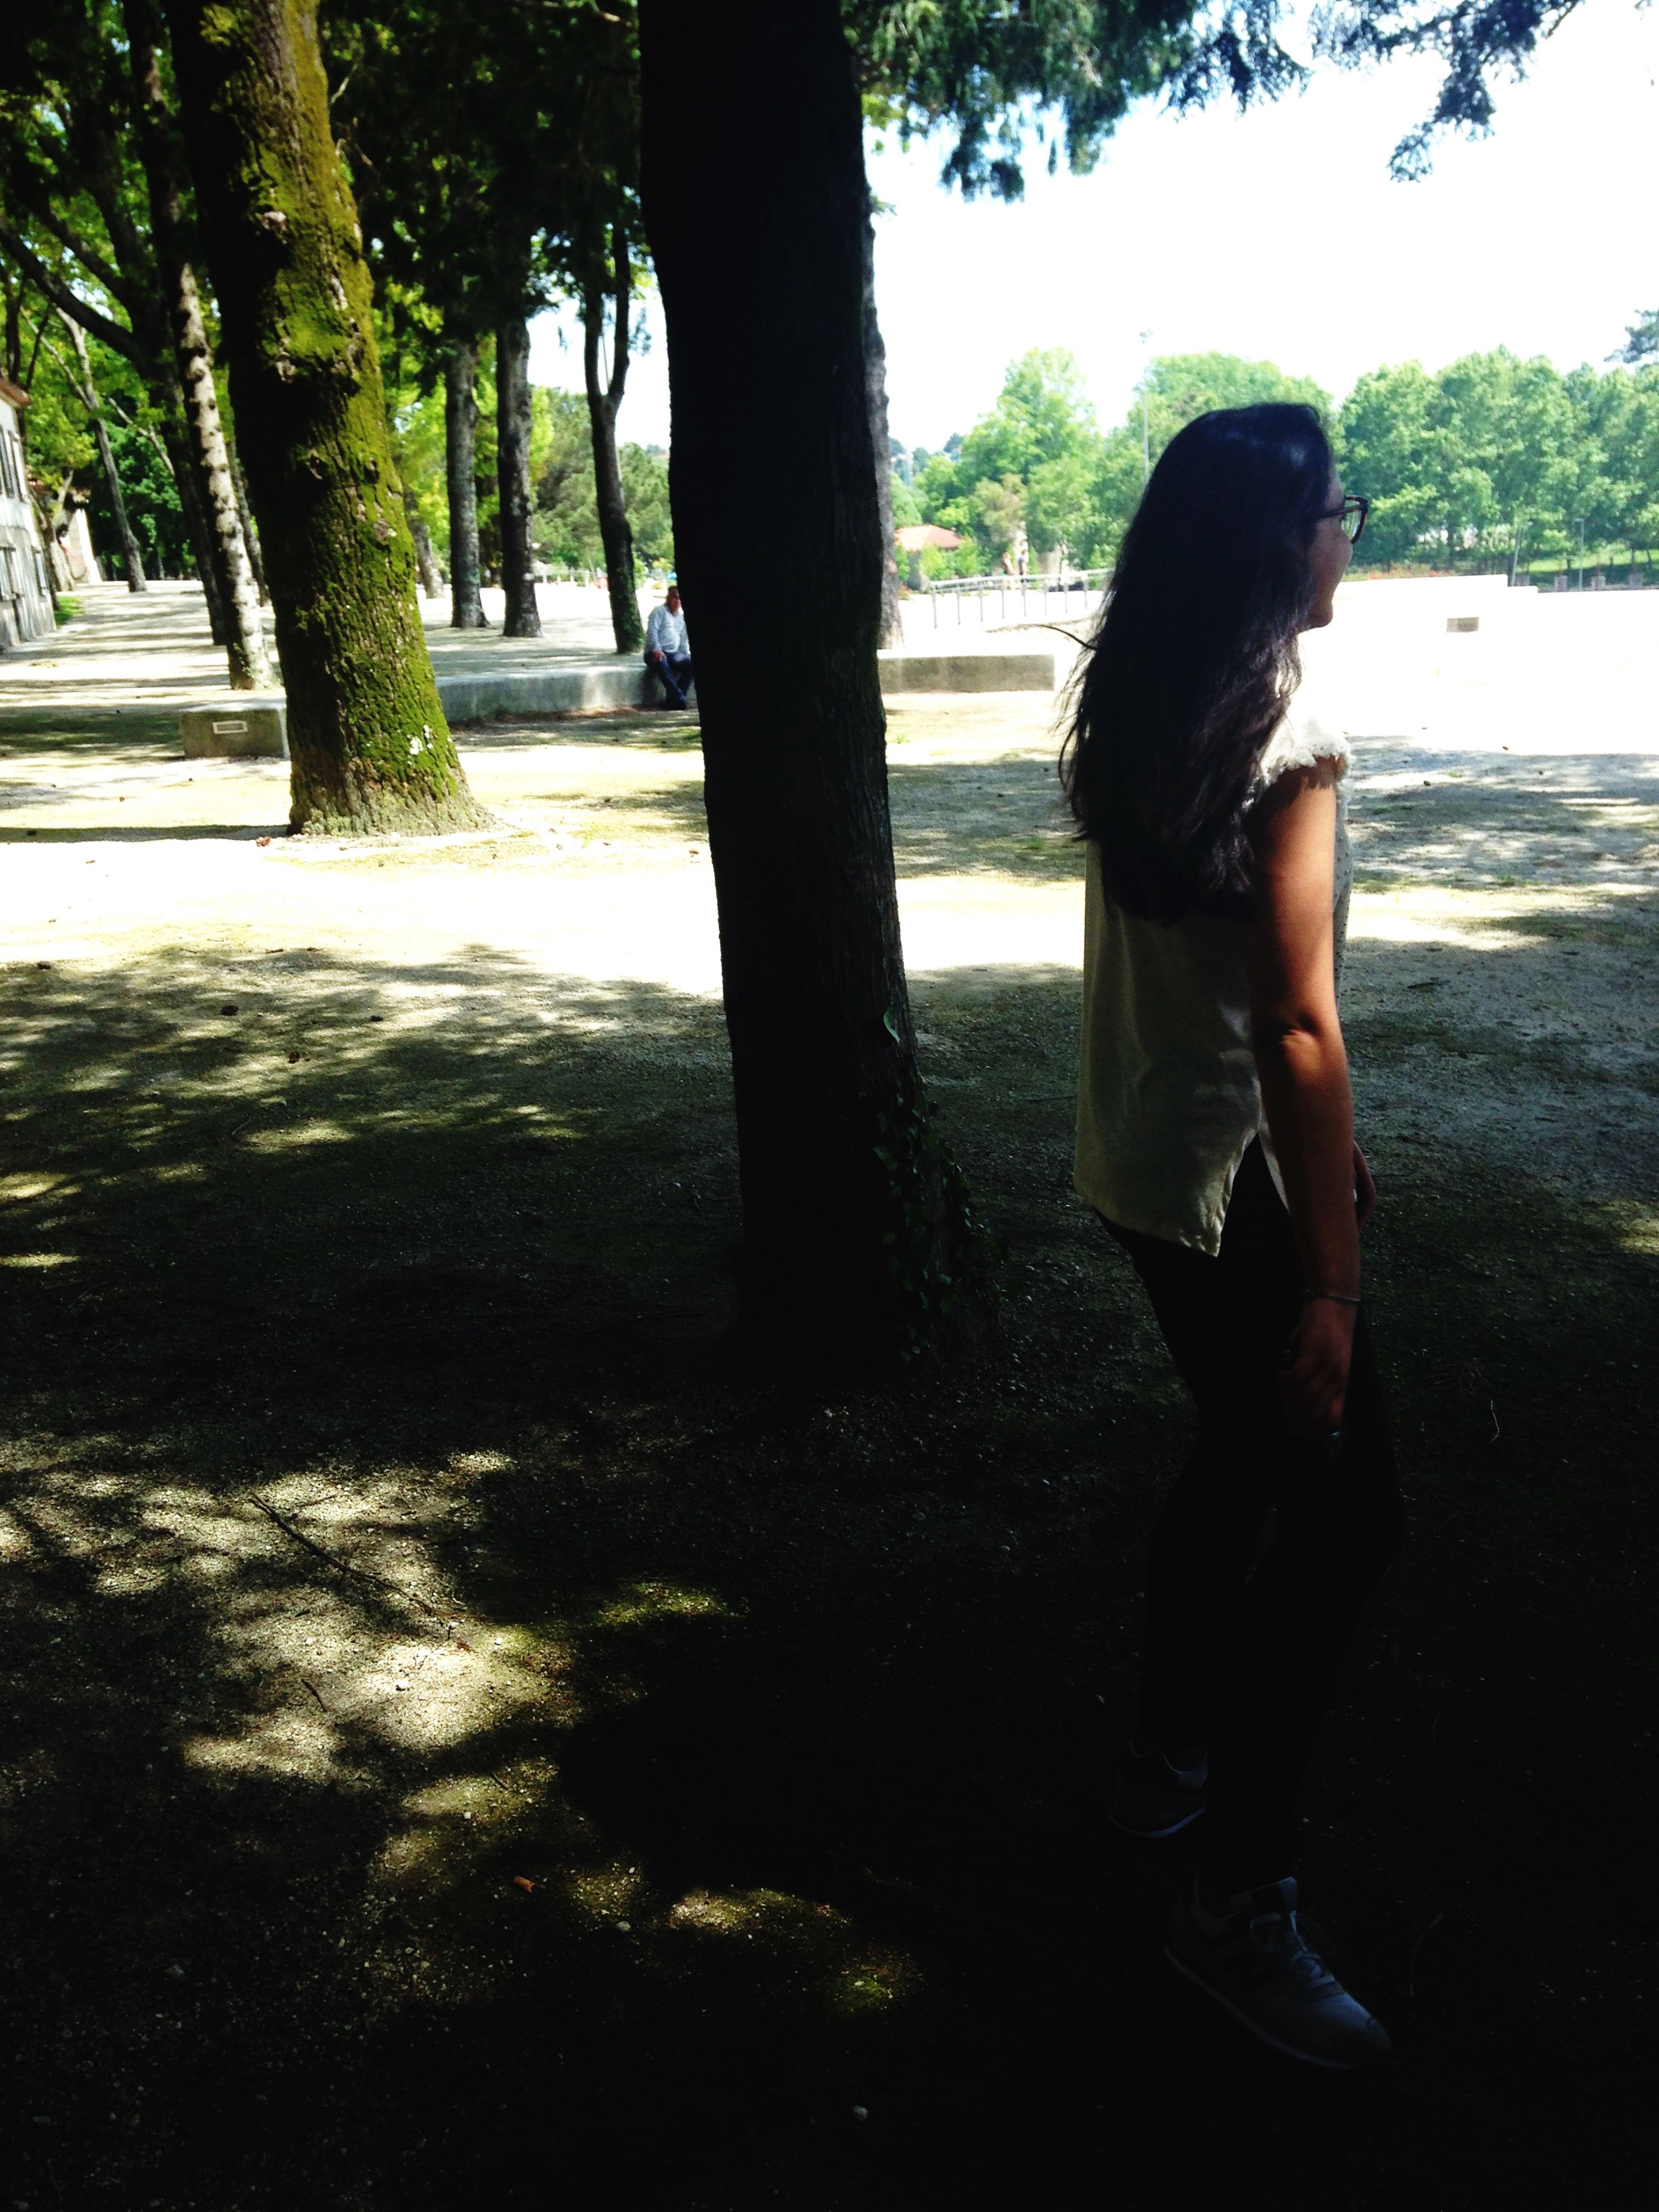 tree, lifestyles, leisure activity, casual clothing, person, full length, tree trunk, standing, childhood, sunlight, side view, young adult, park - man made space, day, growth, rear view, shadow